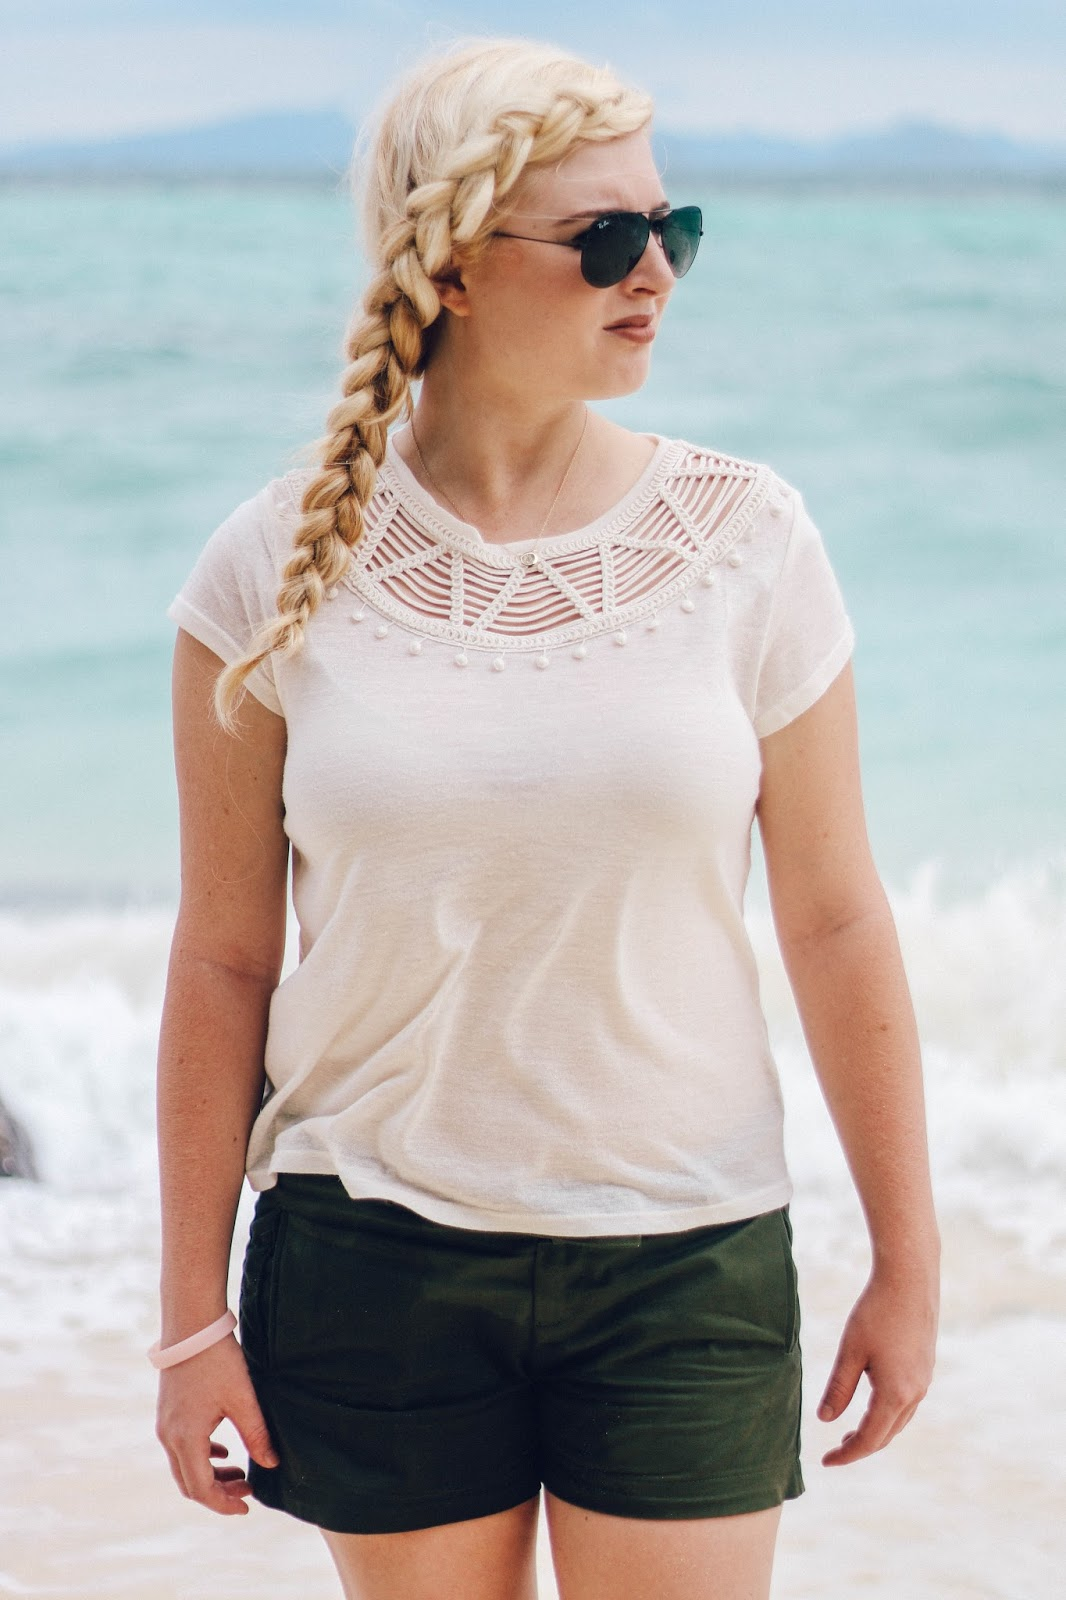 Fashion and Travel Blogger GlobalFashionGal (Brianna Degaston) styling a side french braid while wearing a white boho top and black RayBan aviators at Bamboo Island in the Phi Phi Islands, Thailand.